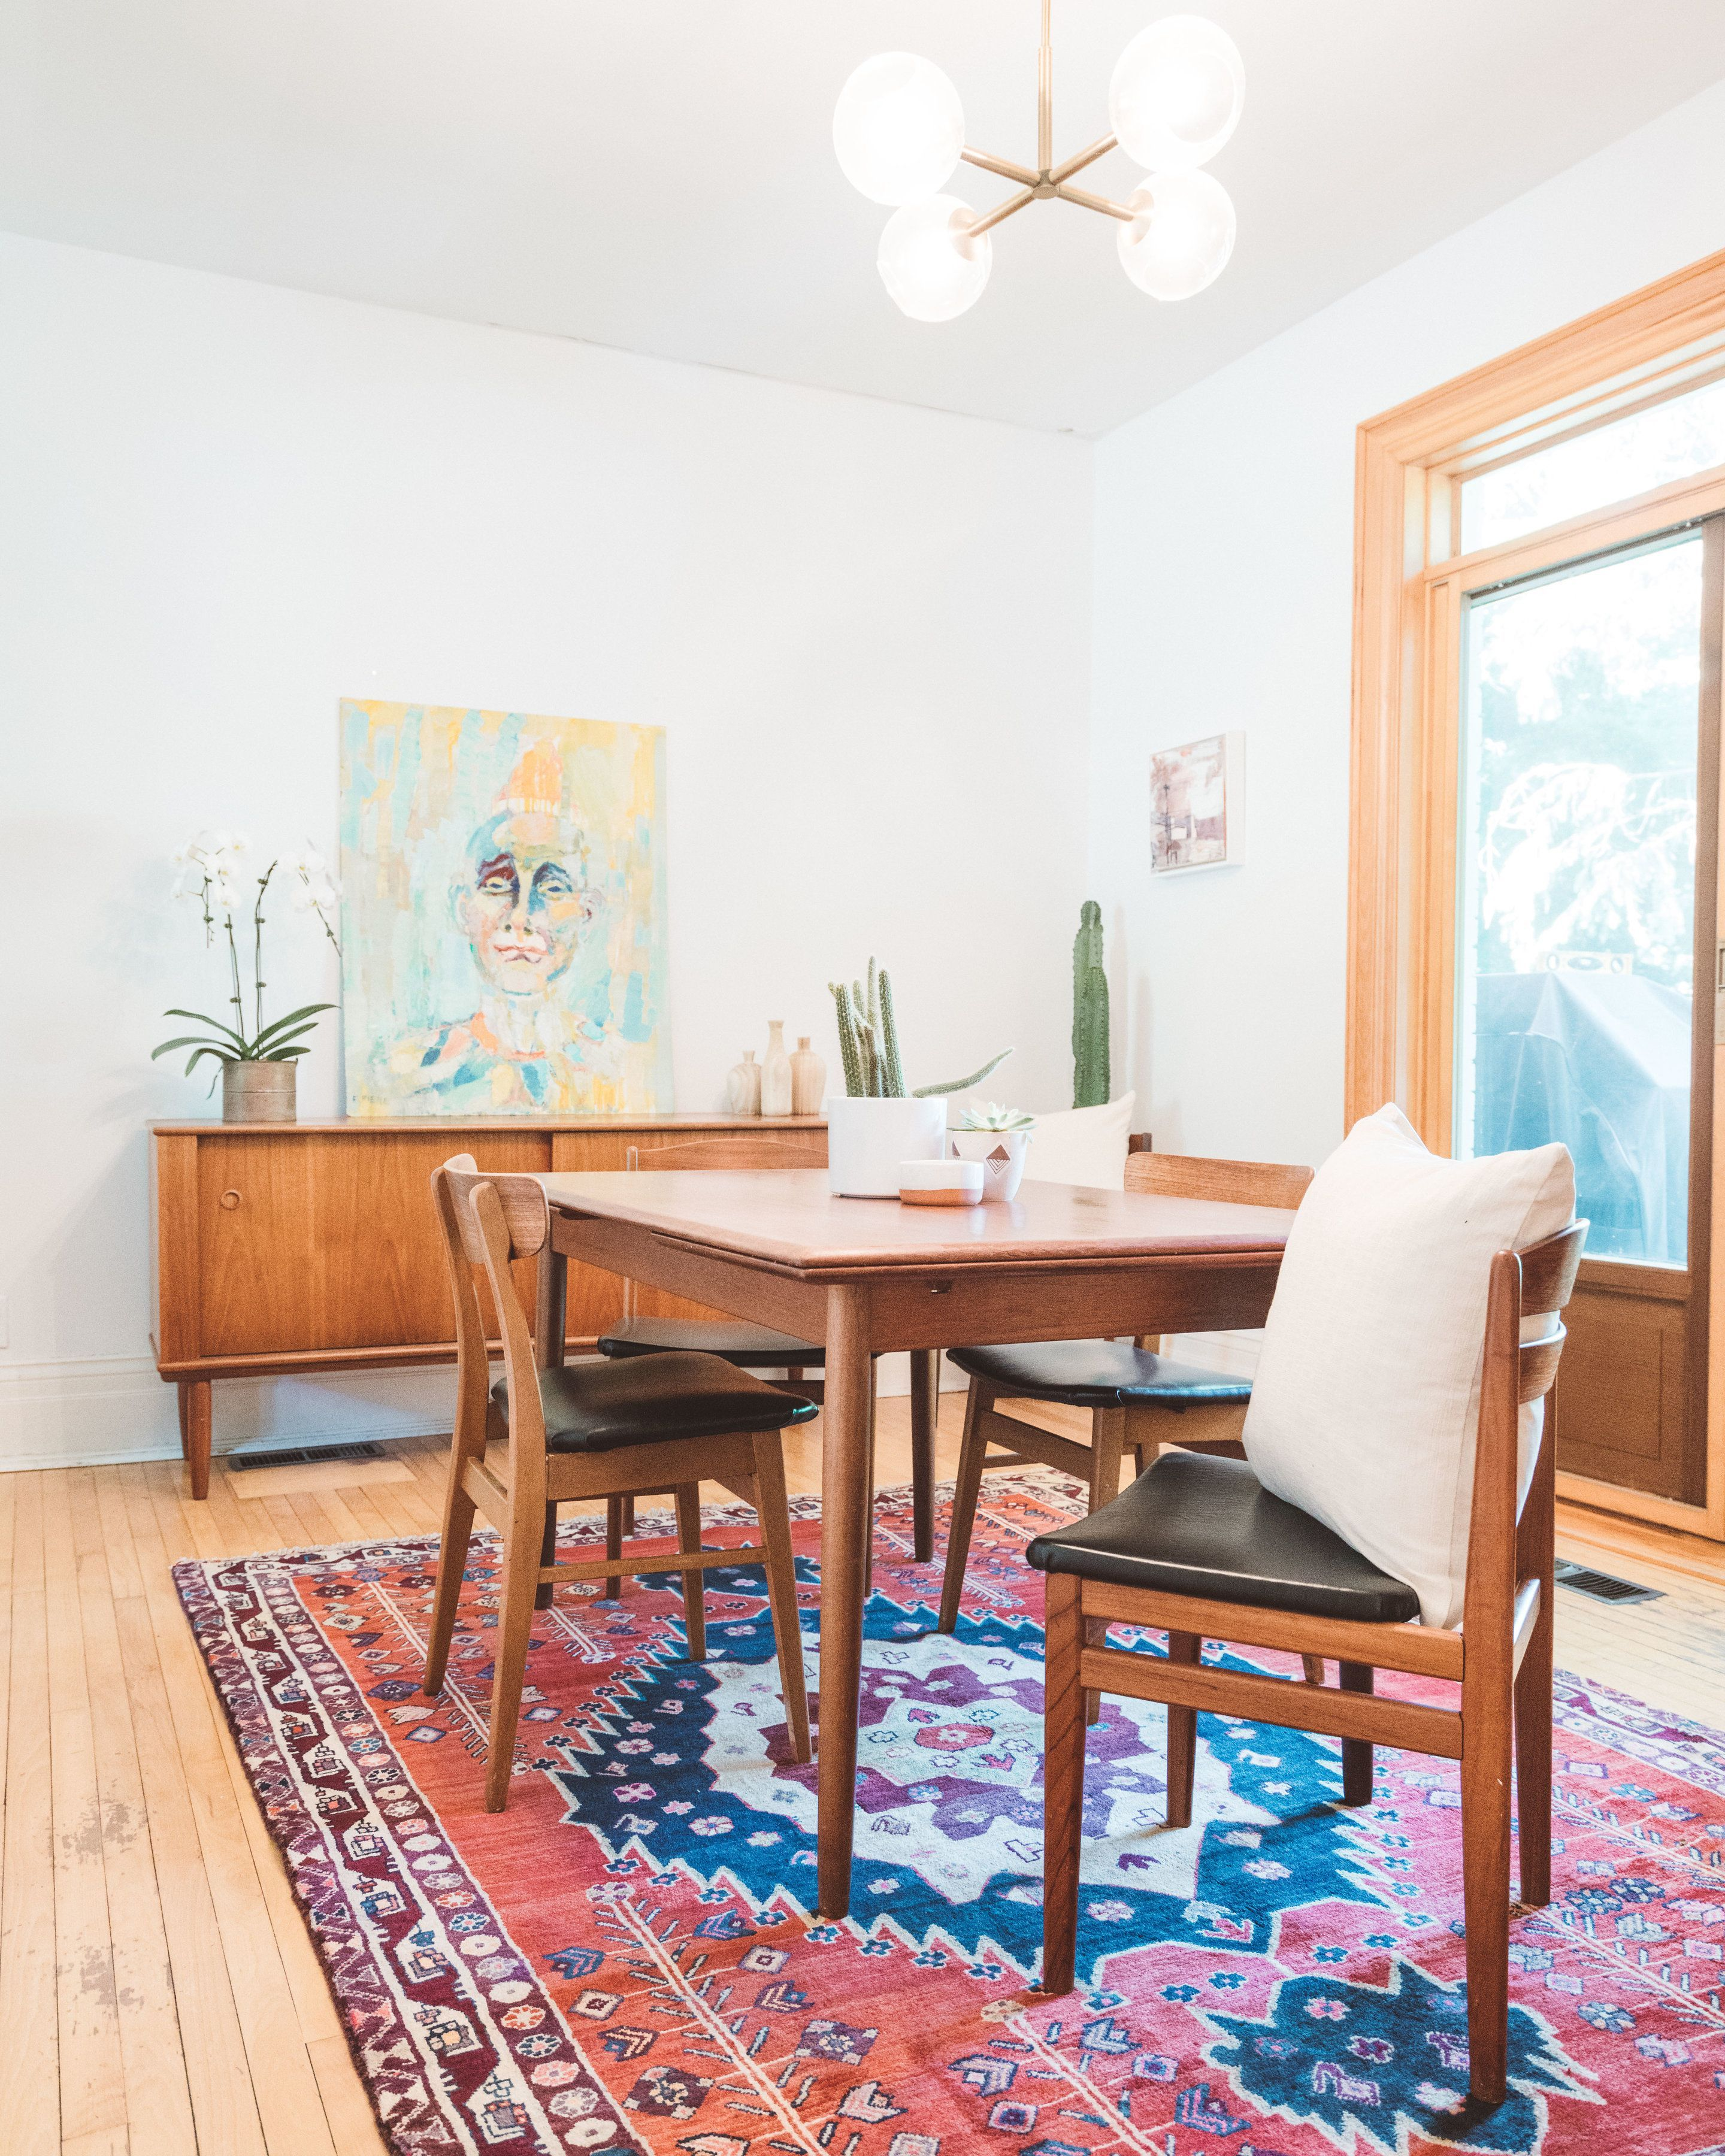 This Vintage Persian Rug Is A Great Way To Warm Up A Dining Room The Rug Under The Dining Table Tren Dining Rug Persian Rug Living Room Rug Under Dining Table